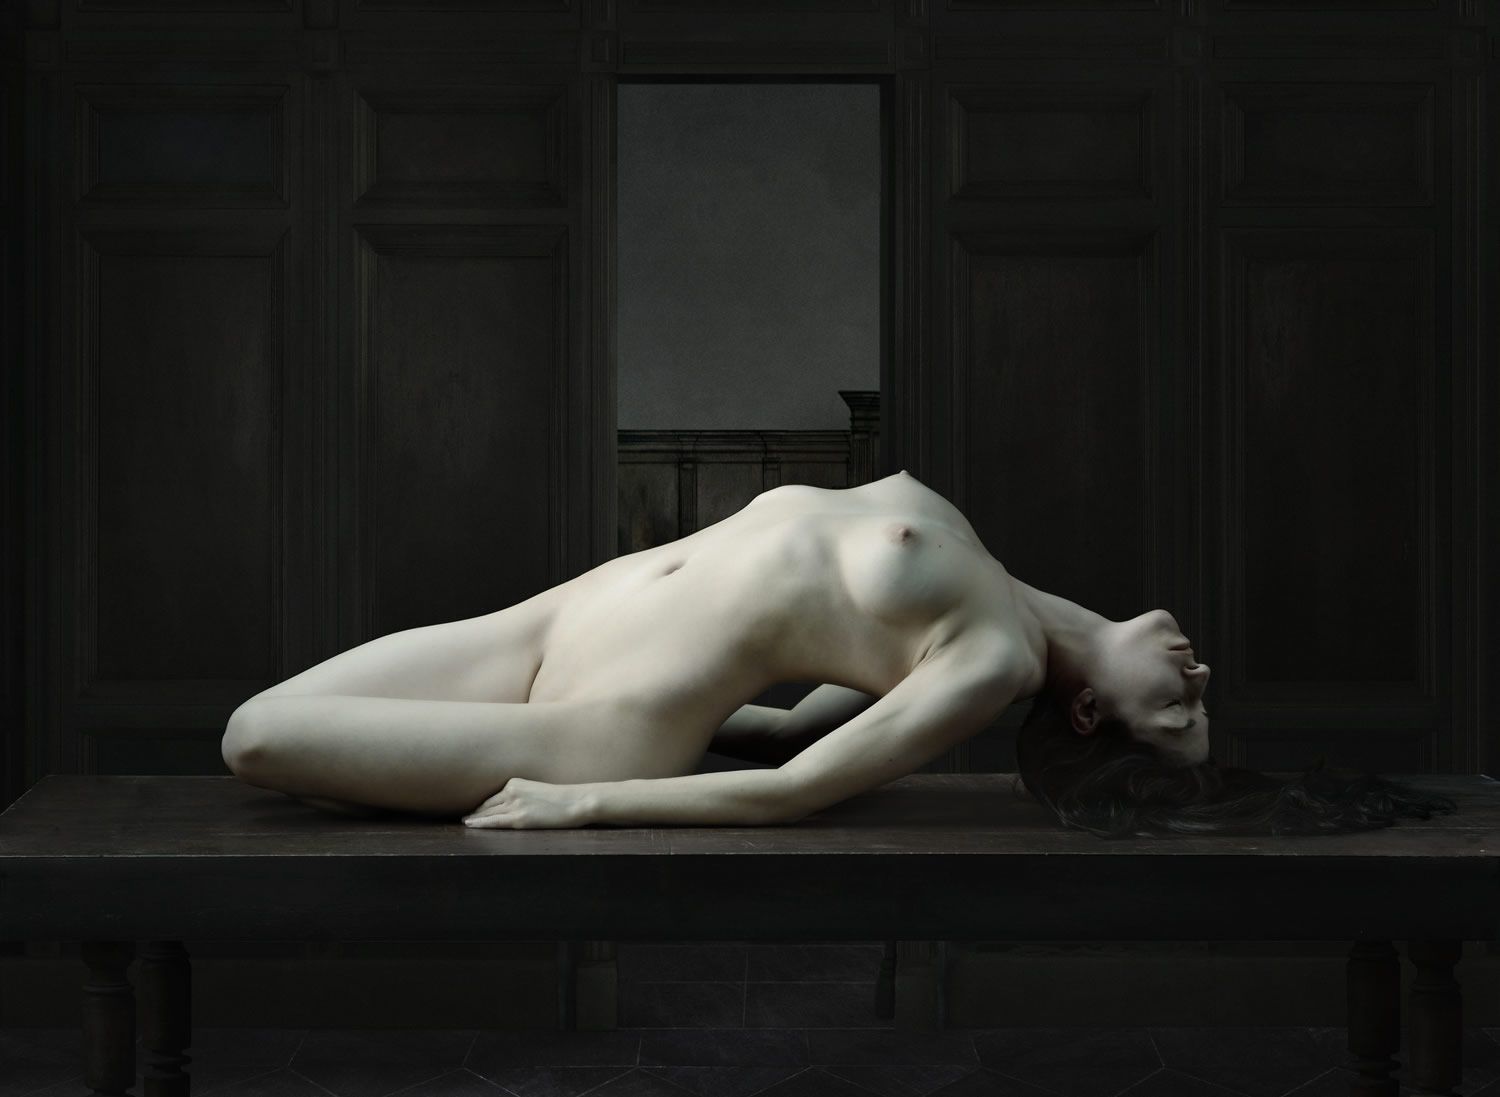 body, drifting series, photography by Olivier Valsecchi